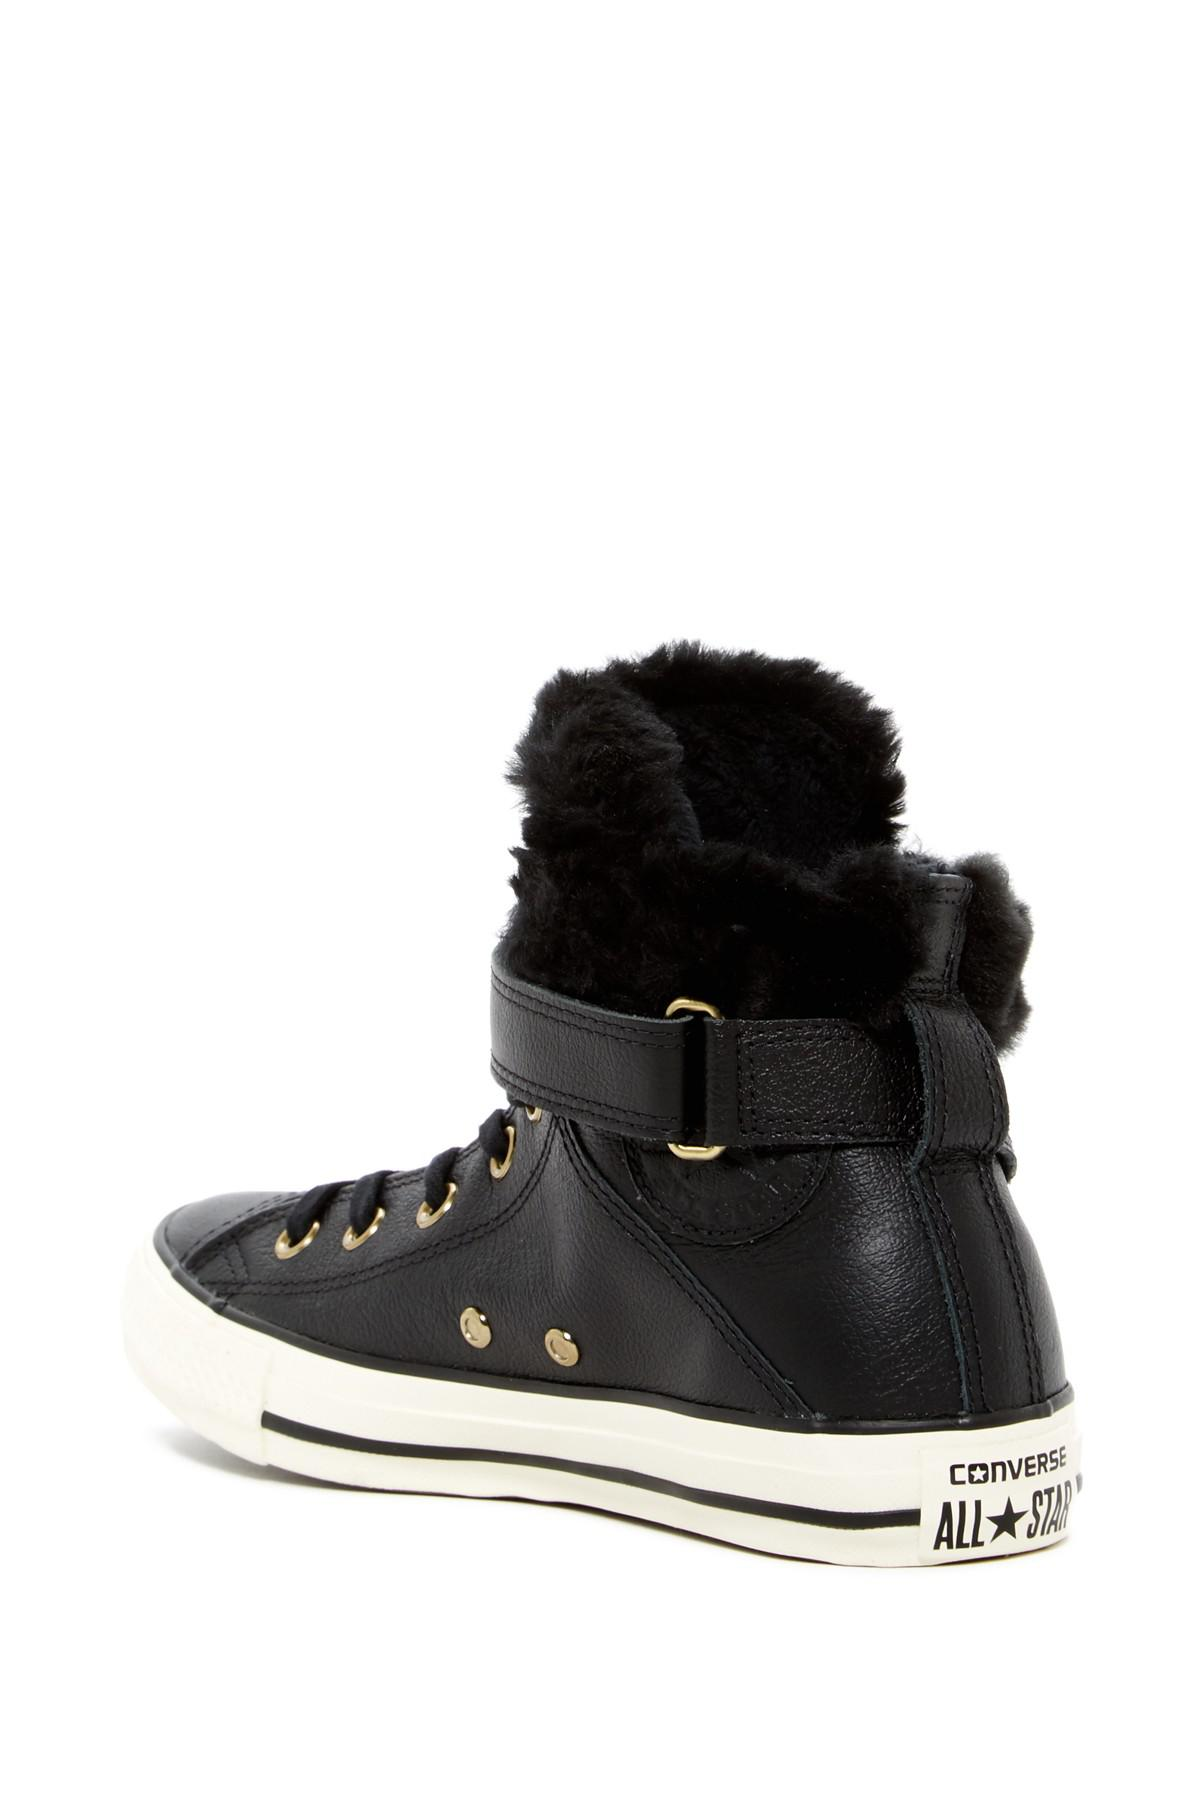 Converse Chuck Taylor All Star Faux Fur Lined Leather High-top ...